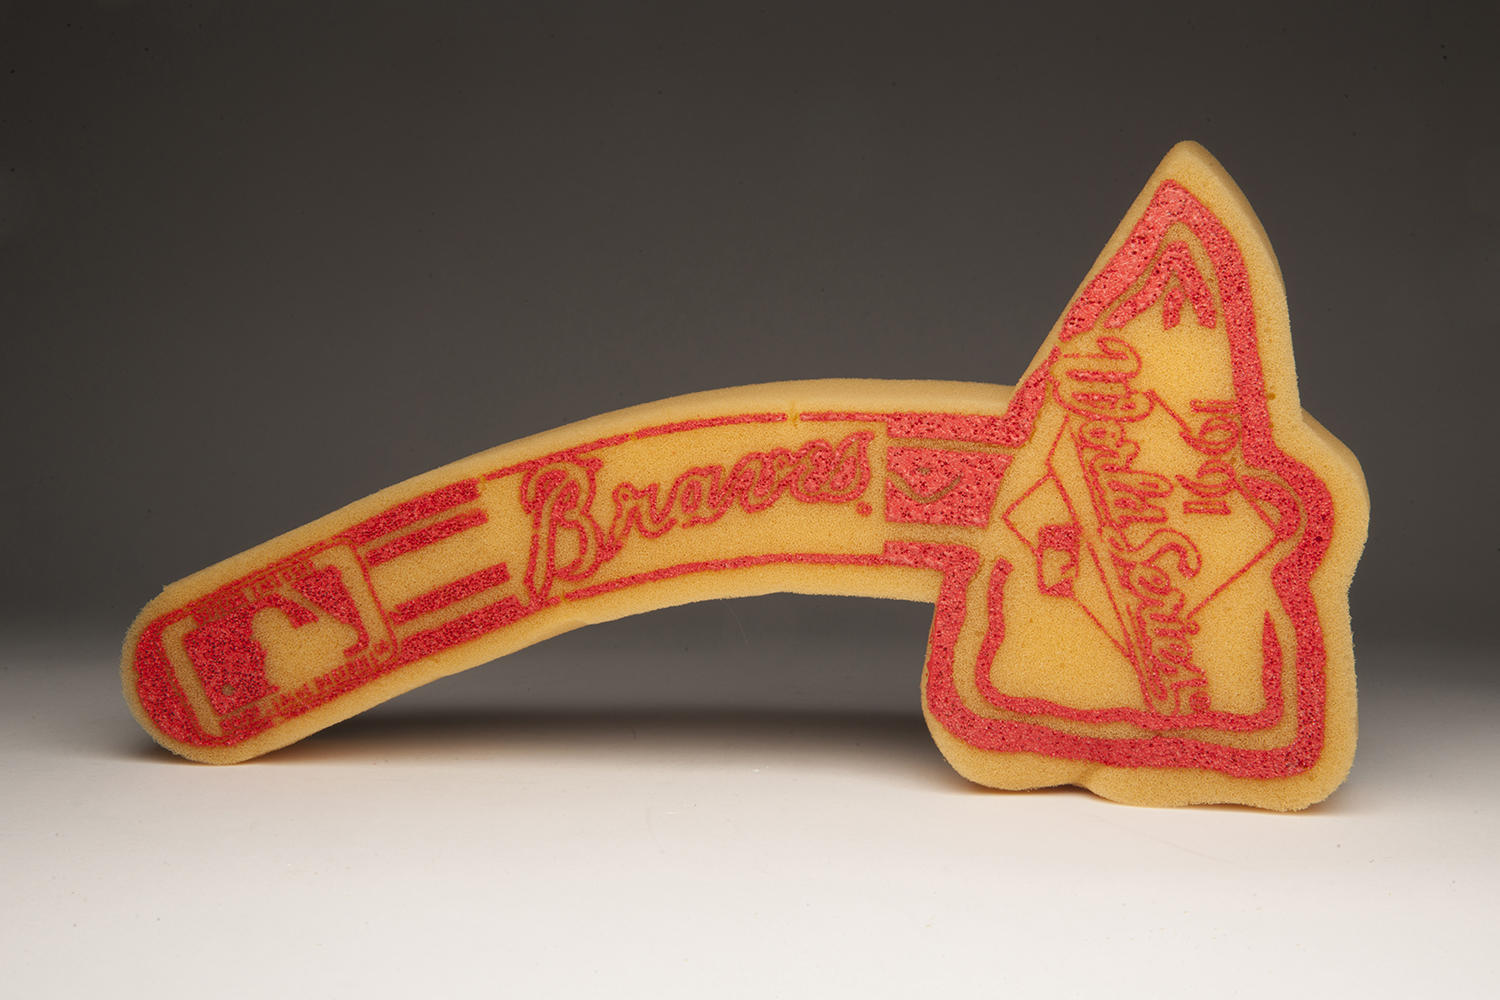 """Braves fans, known for their 'tomahawk chop', used this foam tomahawk to cheer on their team during the 1991 World Series. <a href=""""http://collection.baseballhall.org/islandora/object/islandora%3A262562"""">PASTIME</a> (Milo Stewart Jr. / National Baseball Hall of Fame)"""